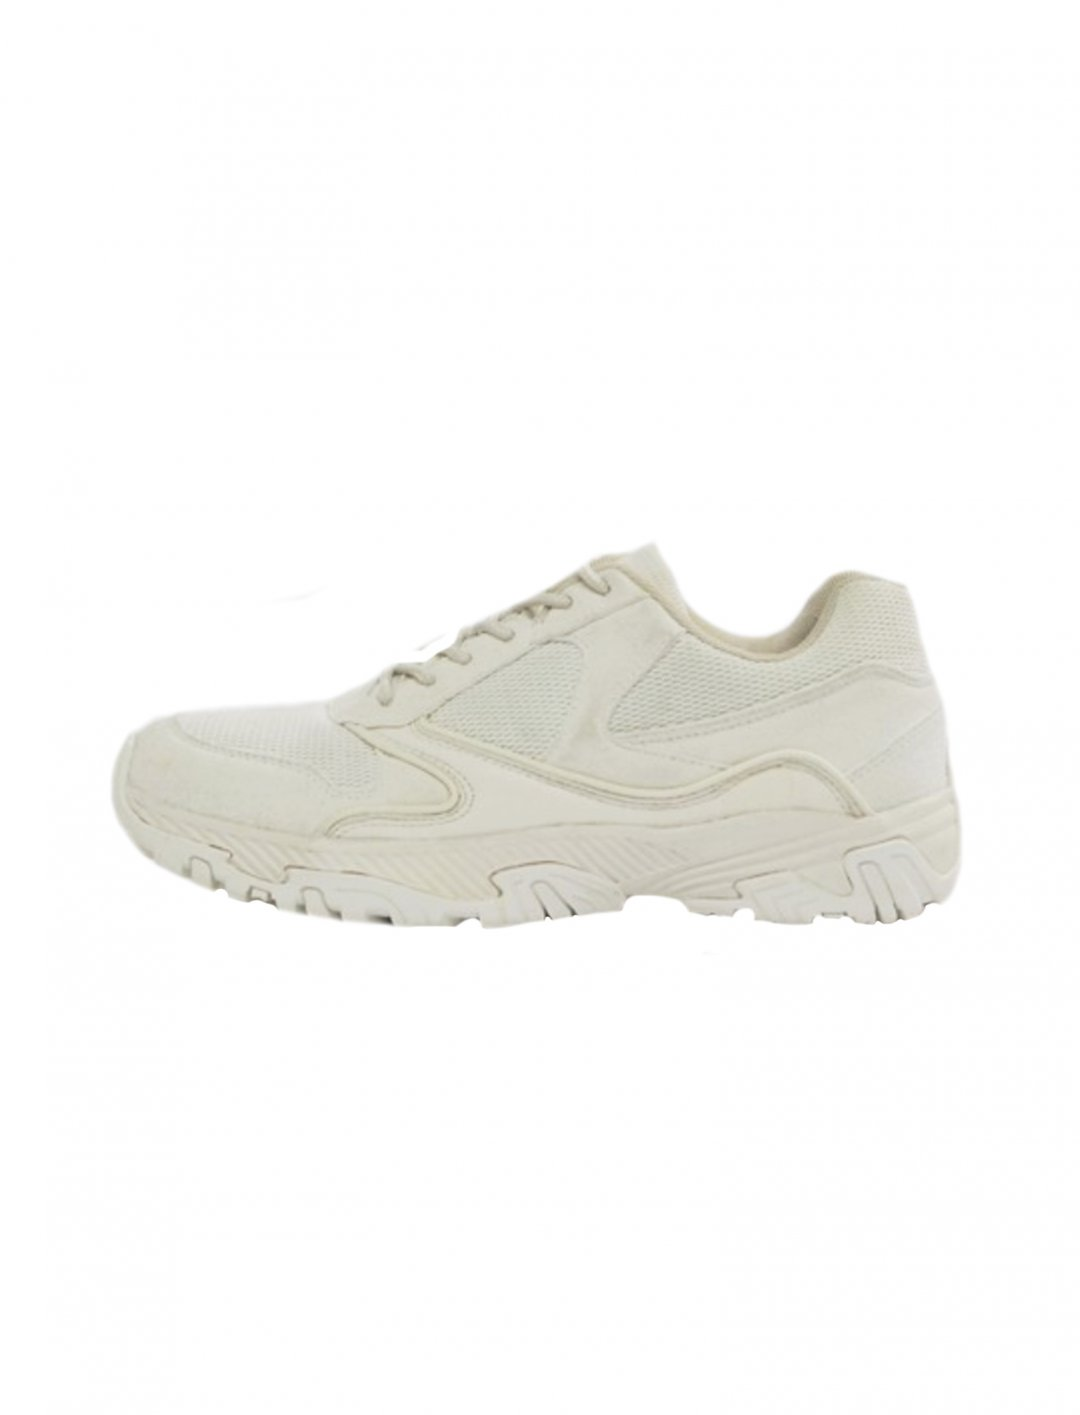 "Asos Trainers {""id"":5,""product_section_id"":1,""name"":""Clothing"",""order"":5} Asos"